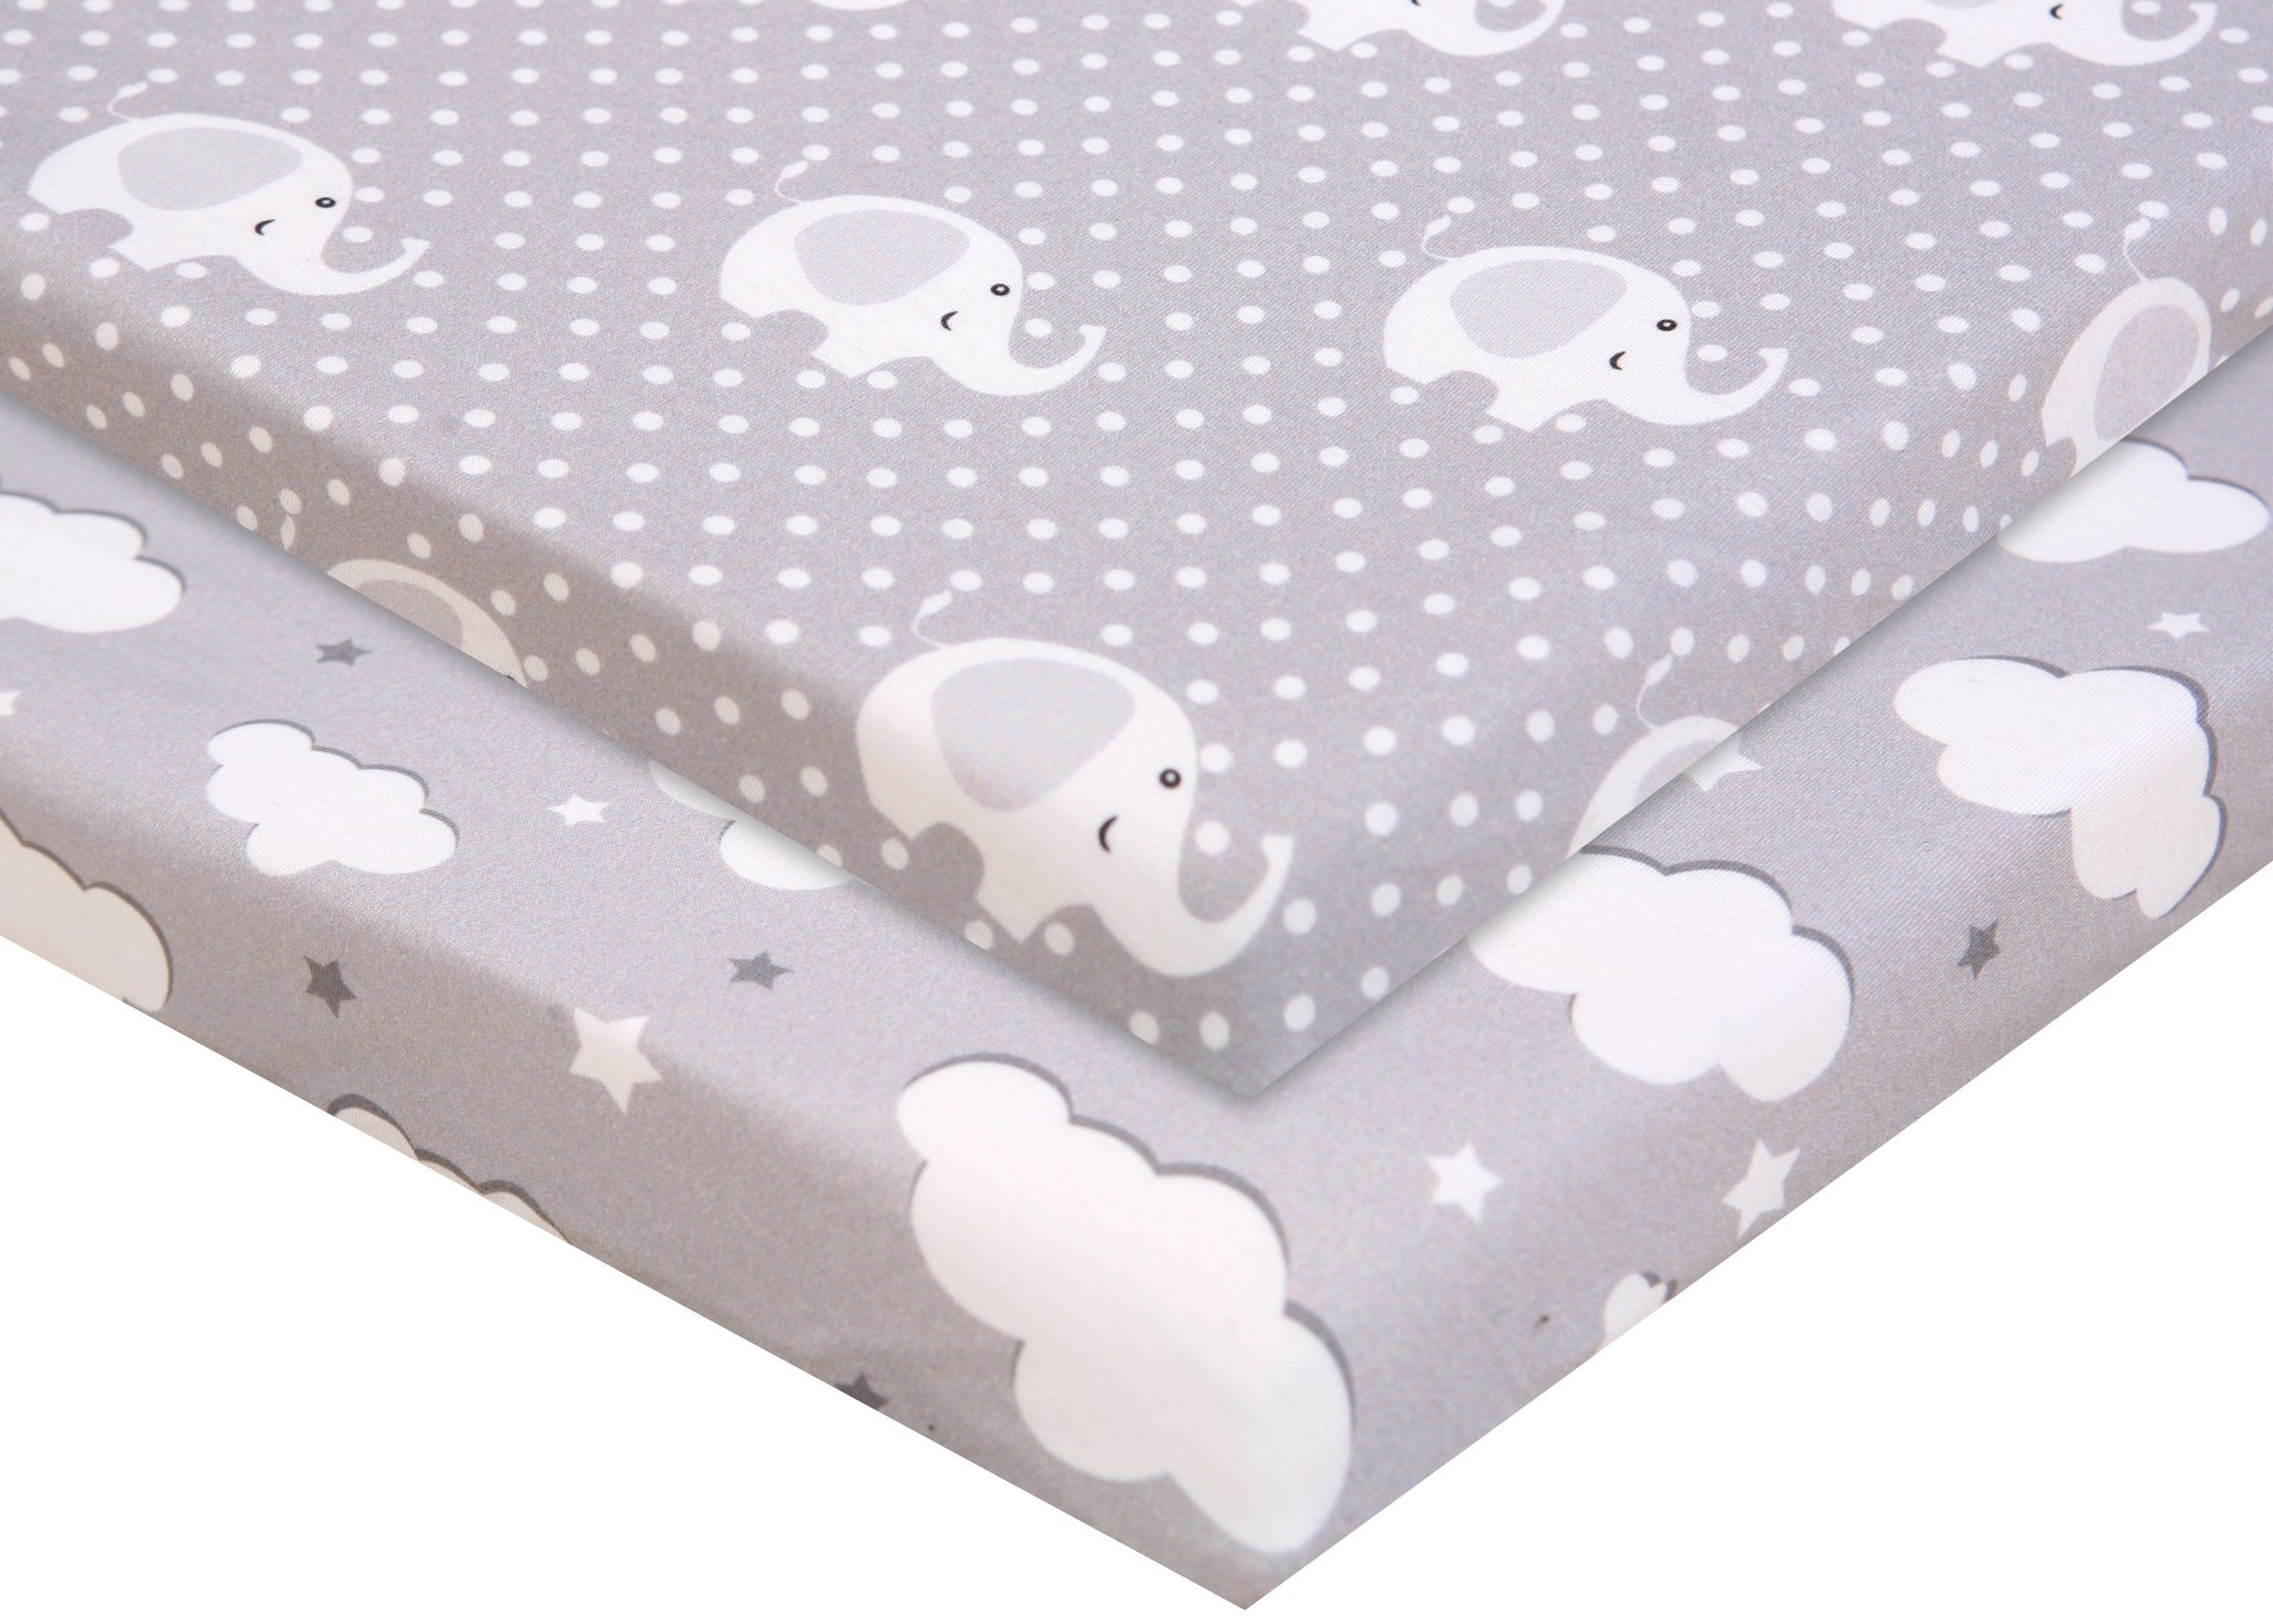 Pack n Play Fitted Pack n Play Playard Sheet Set-2 Pack Portable Mini Crib Sheets,Playard Mattress Cover,Super Soft Material,Elephants & Clouds